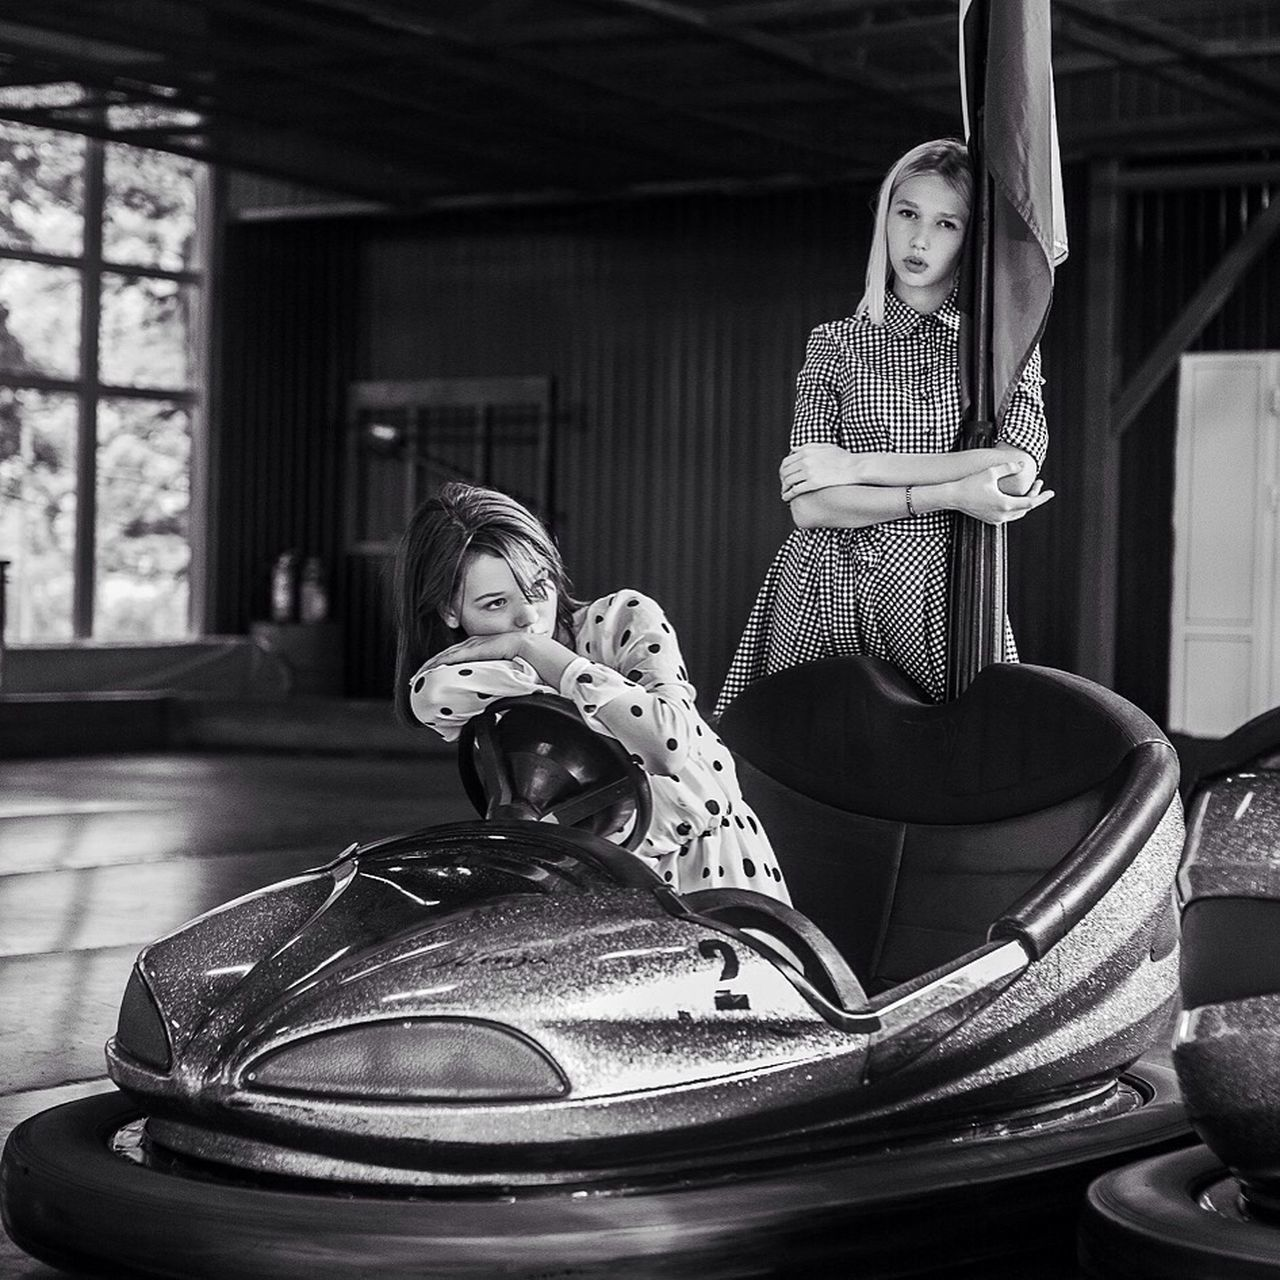 Sitting Indoors  Home Interior Gramophone Women People Smiling Adult Period Costume Day EyeEm Best Edits Eyeemphotography EyeEm Gallery EyeEm Best Shots Portraitist - 2016 Eyeem Awards Eyemphotography Young Women Beautiful Woman Females Two People Togetherness Young Adult Friendship